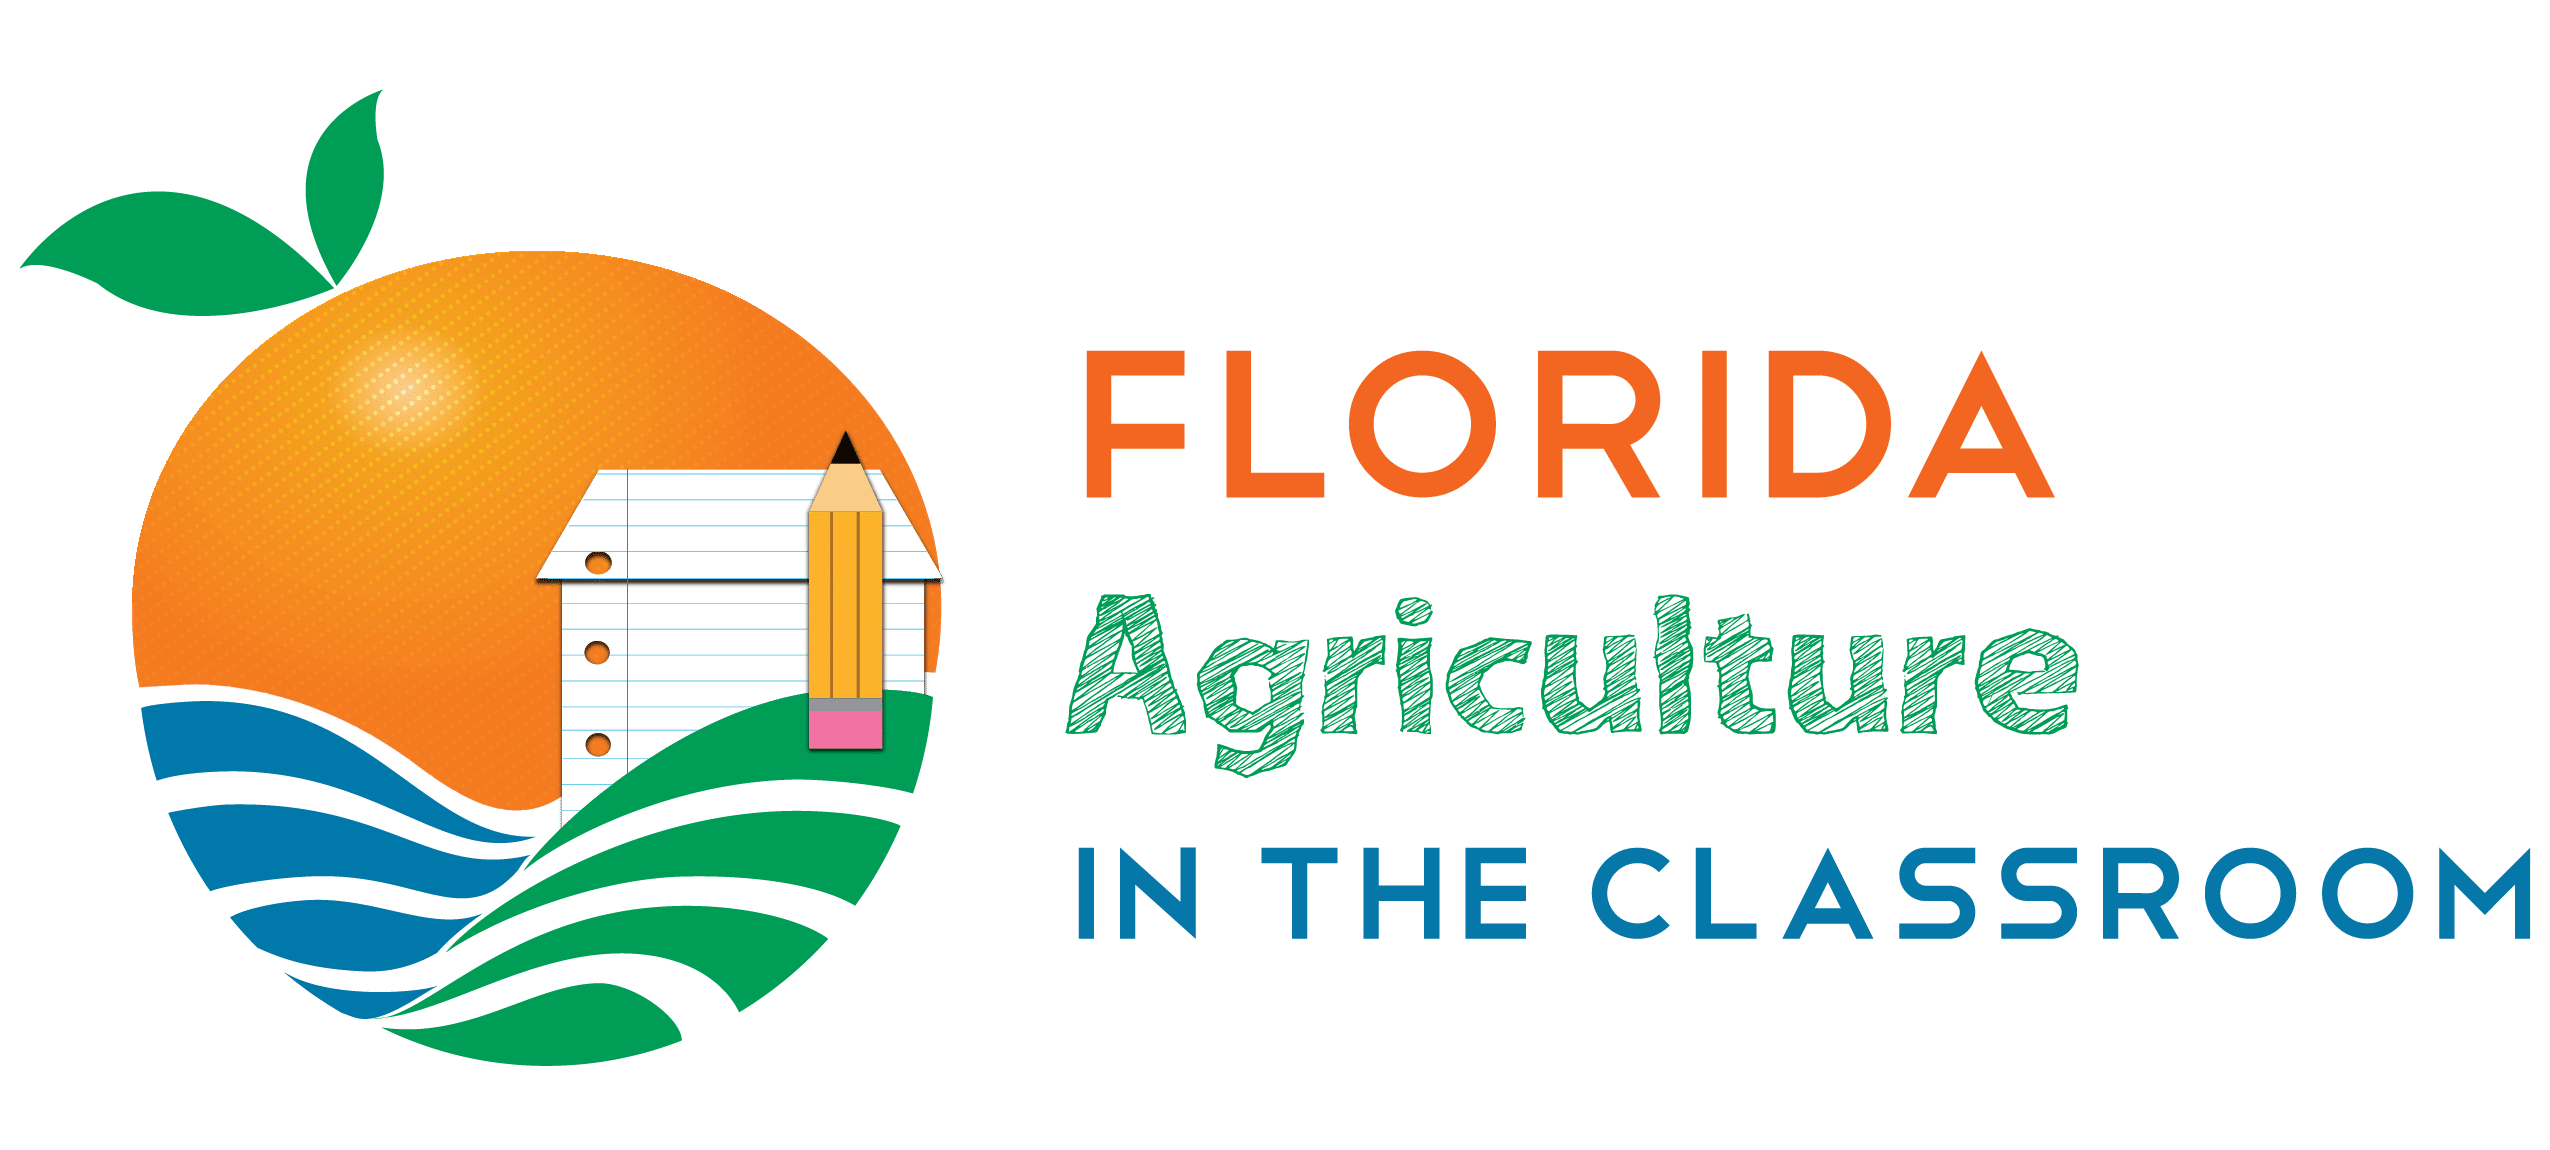 Florida Agriculture in the Classroom 🍊